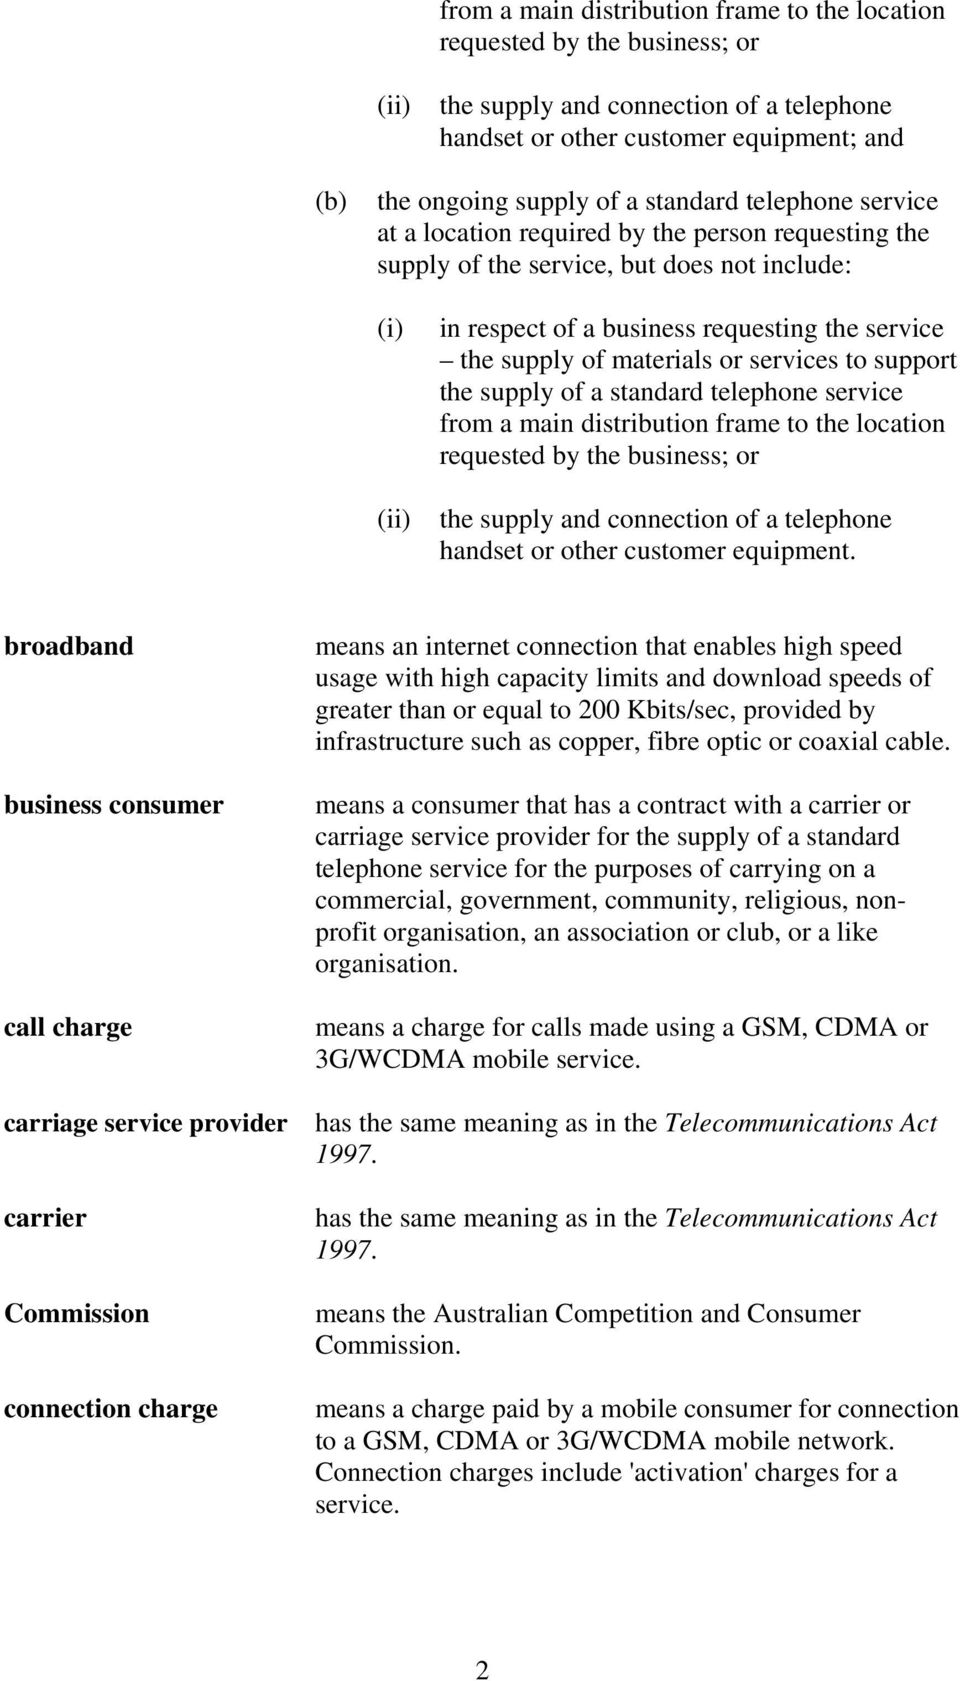 materials or services to support the supply of a standard telephone service from a main distribution frame to the location requested by the business; or the supply and connection of a telephone